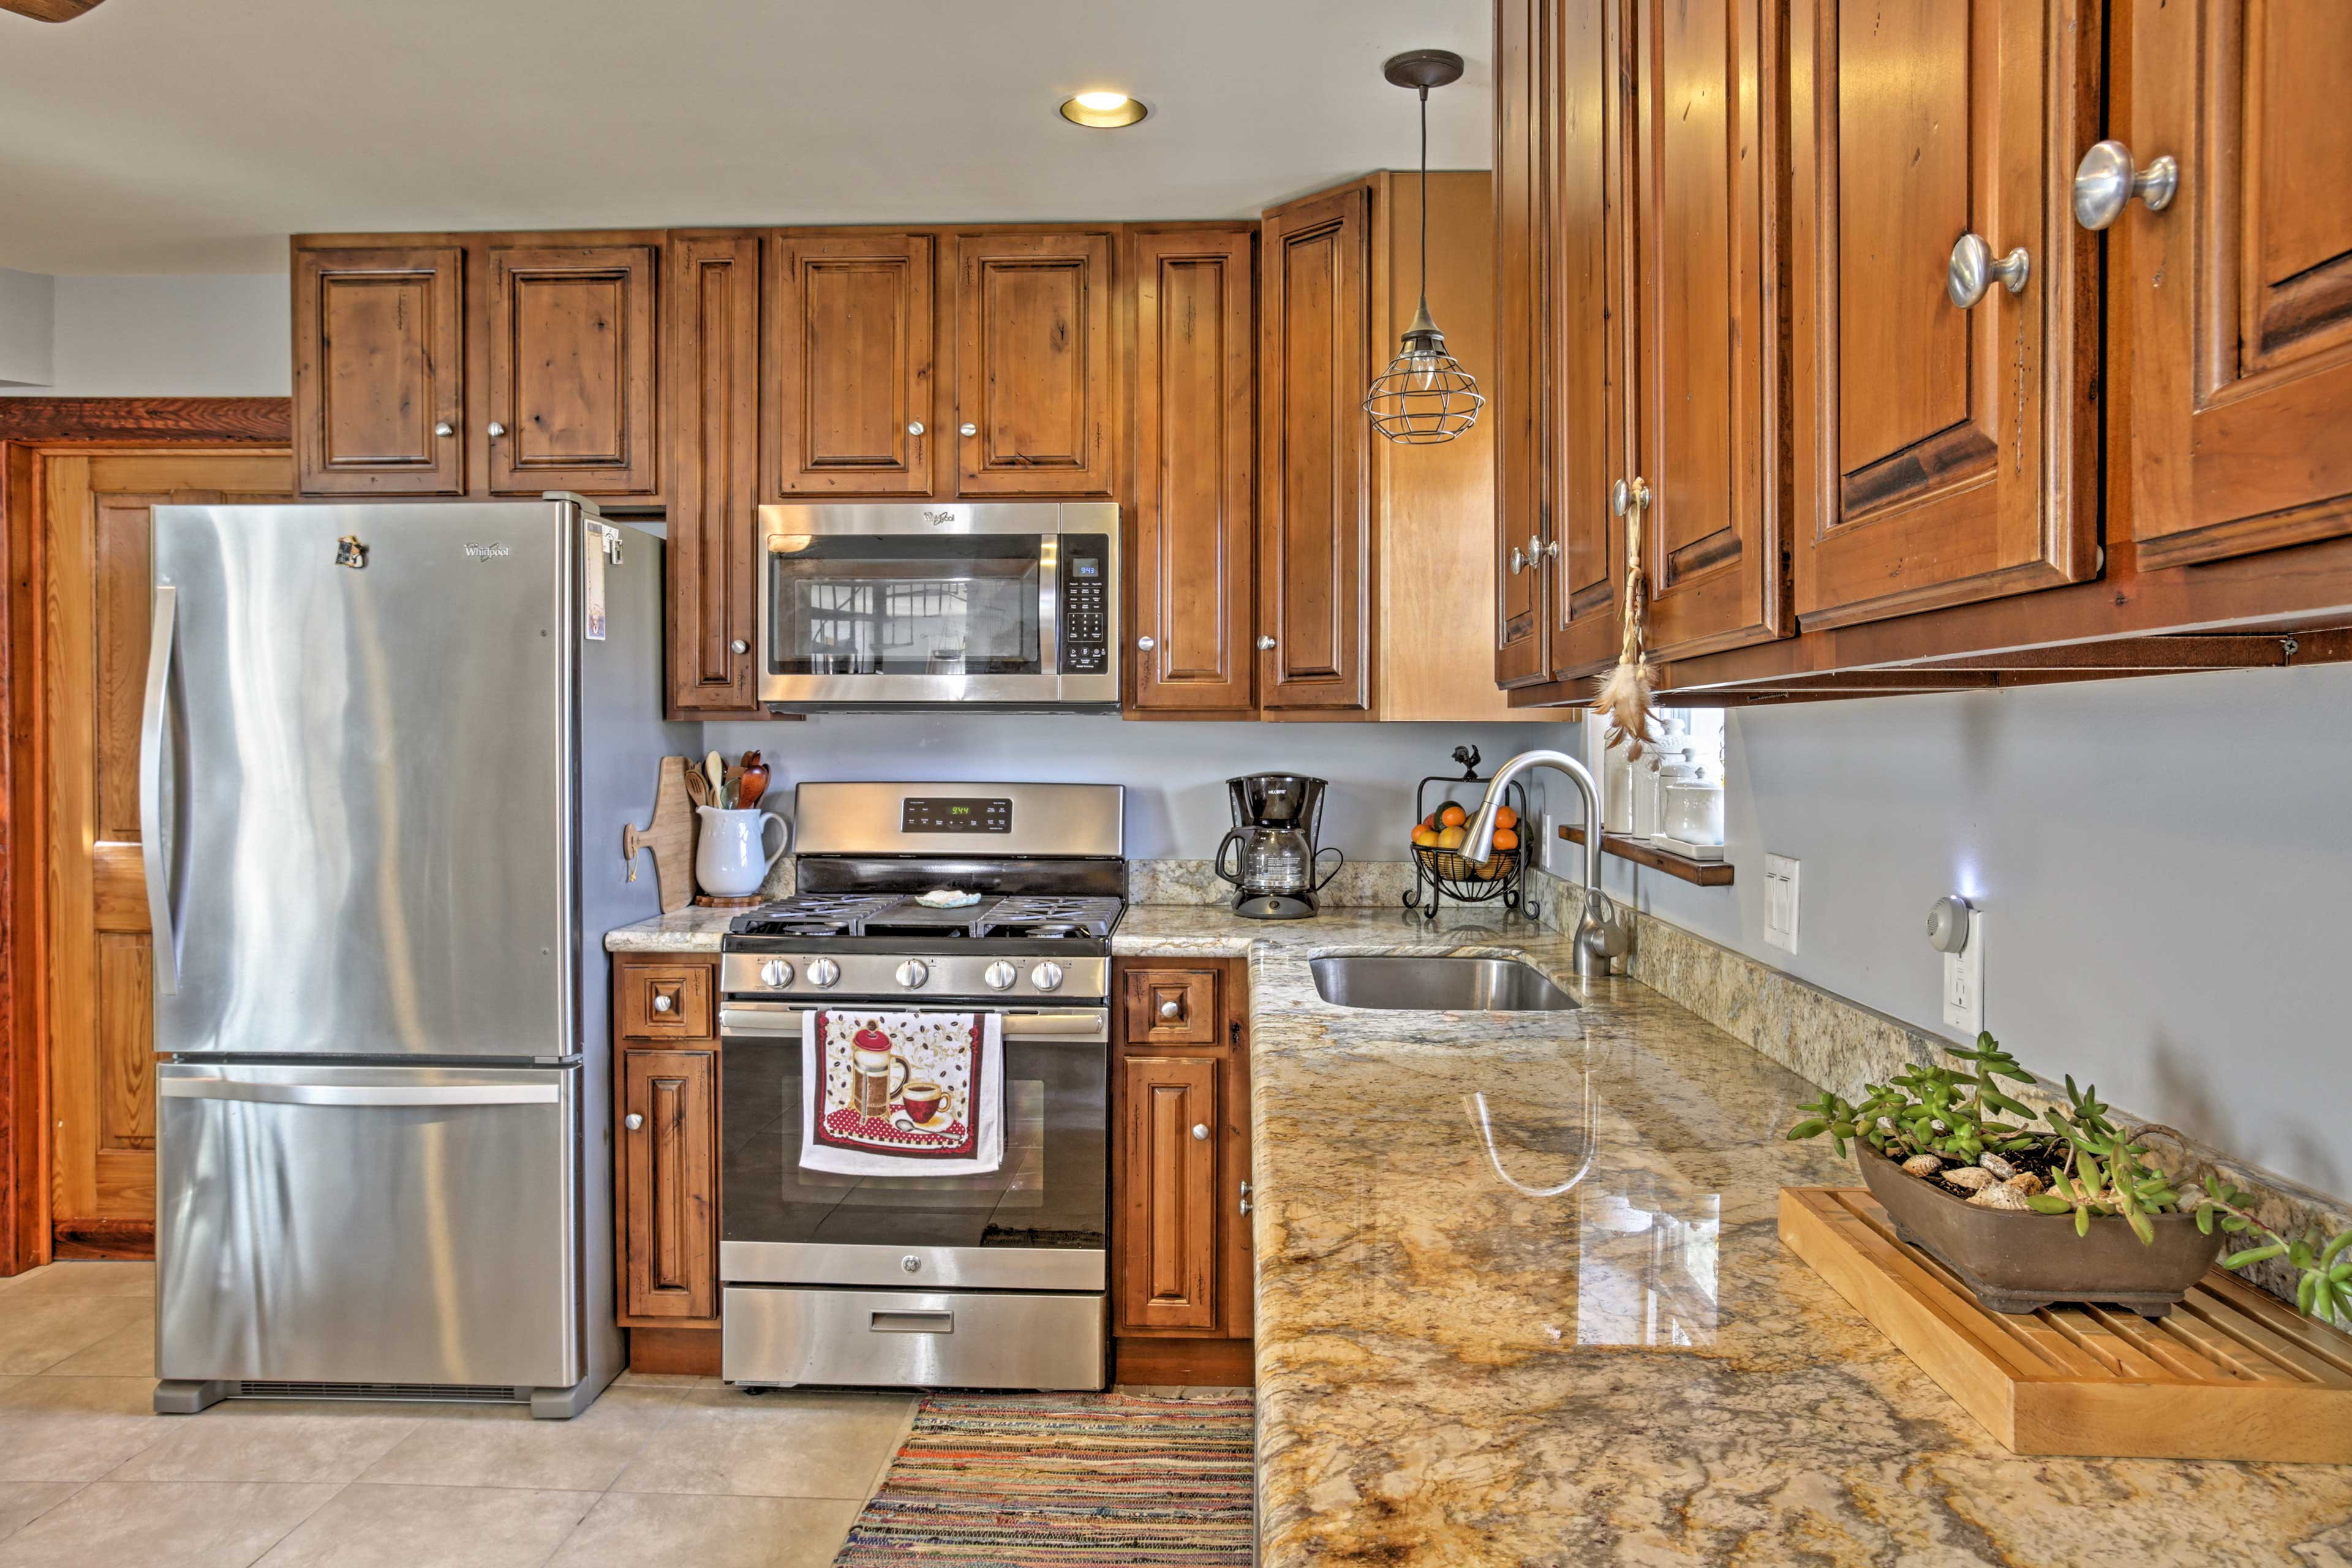 The fully equipped kitchen has granite counters and stainless steel appliances.